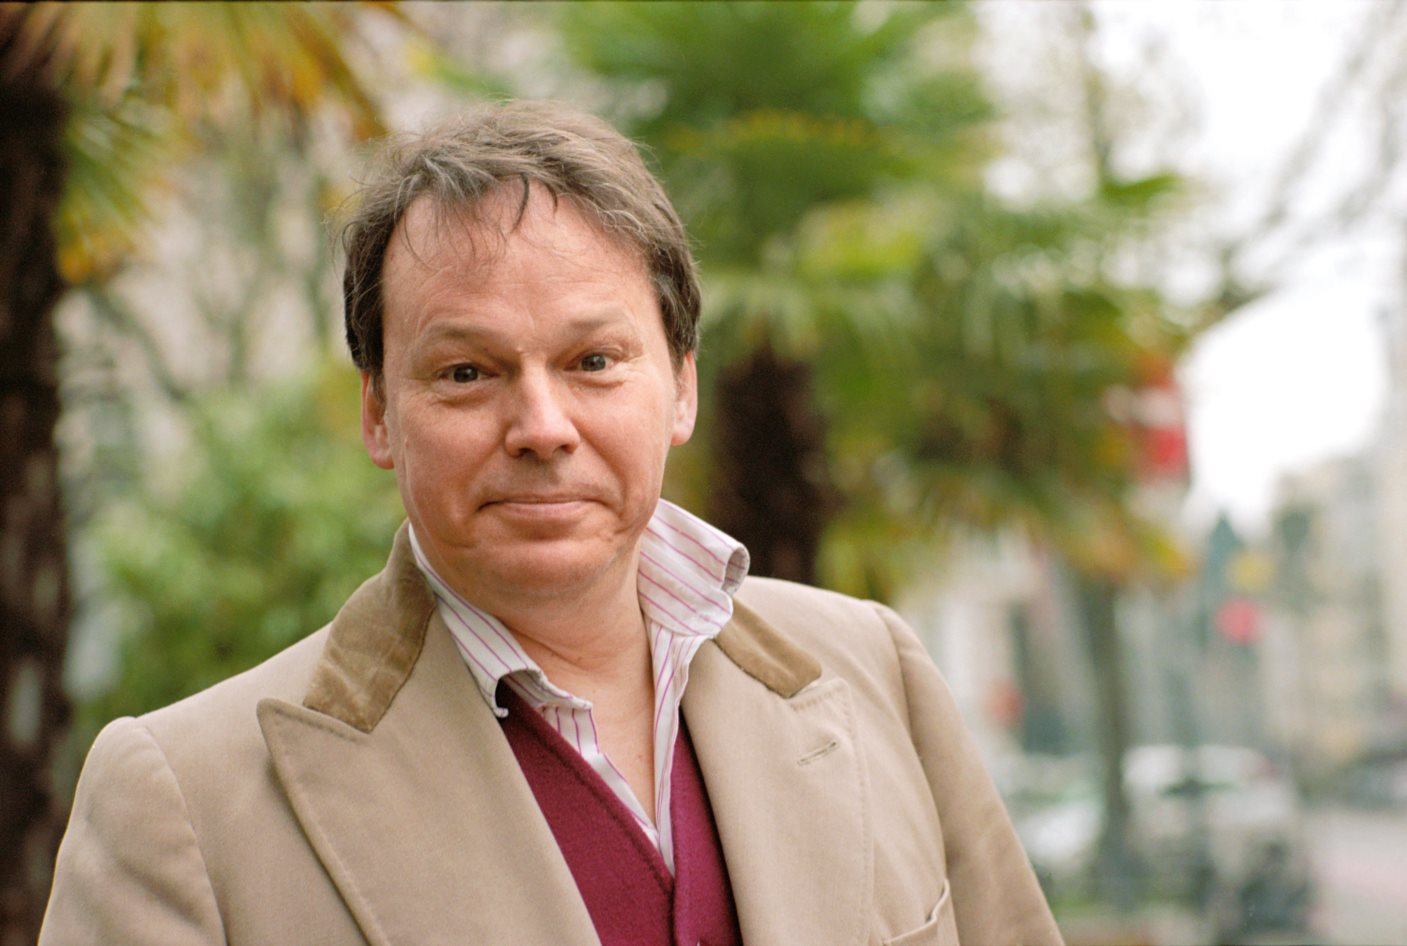 How David Graeber Cancelled a Colleague - Quillette